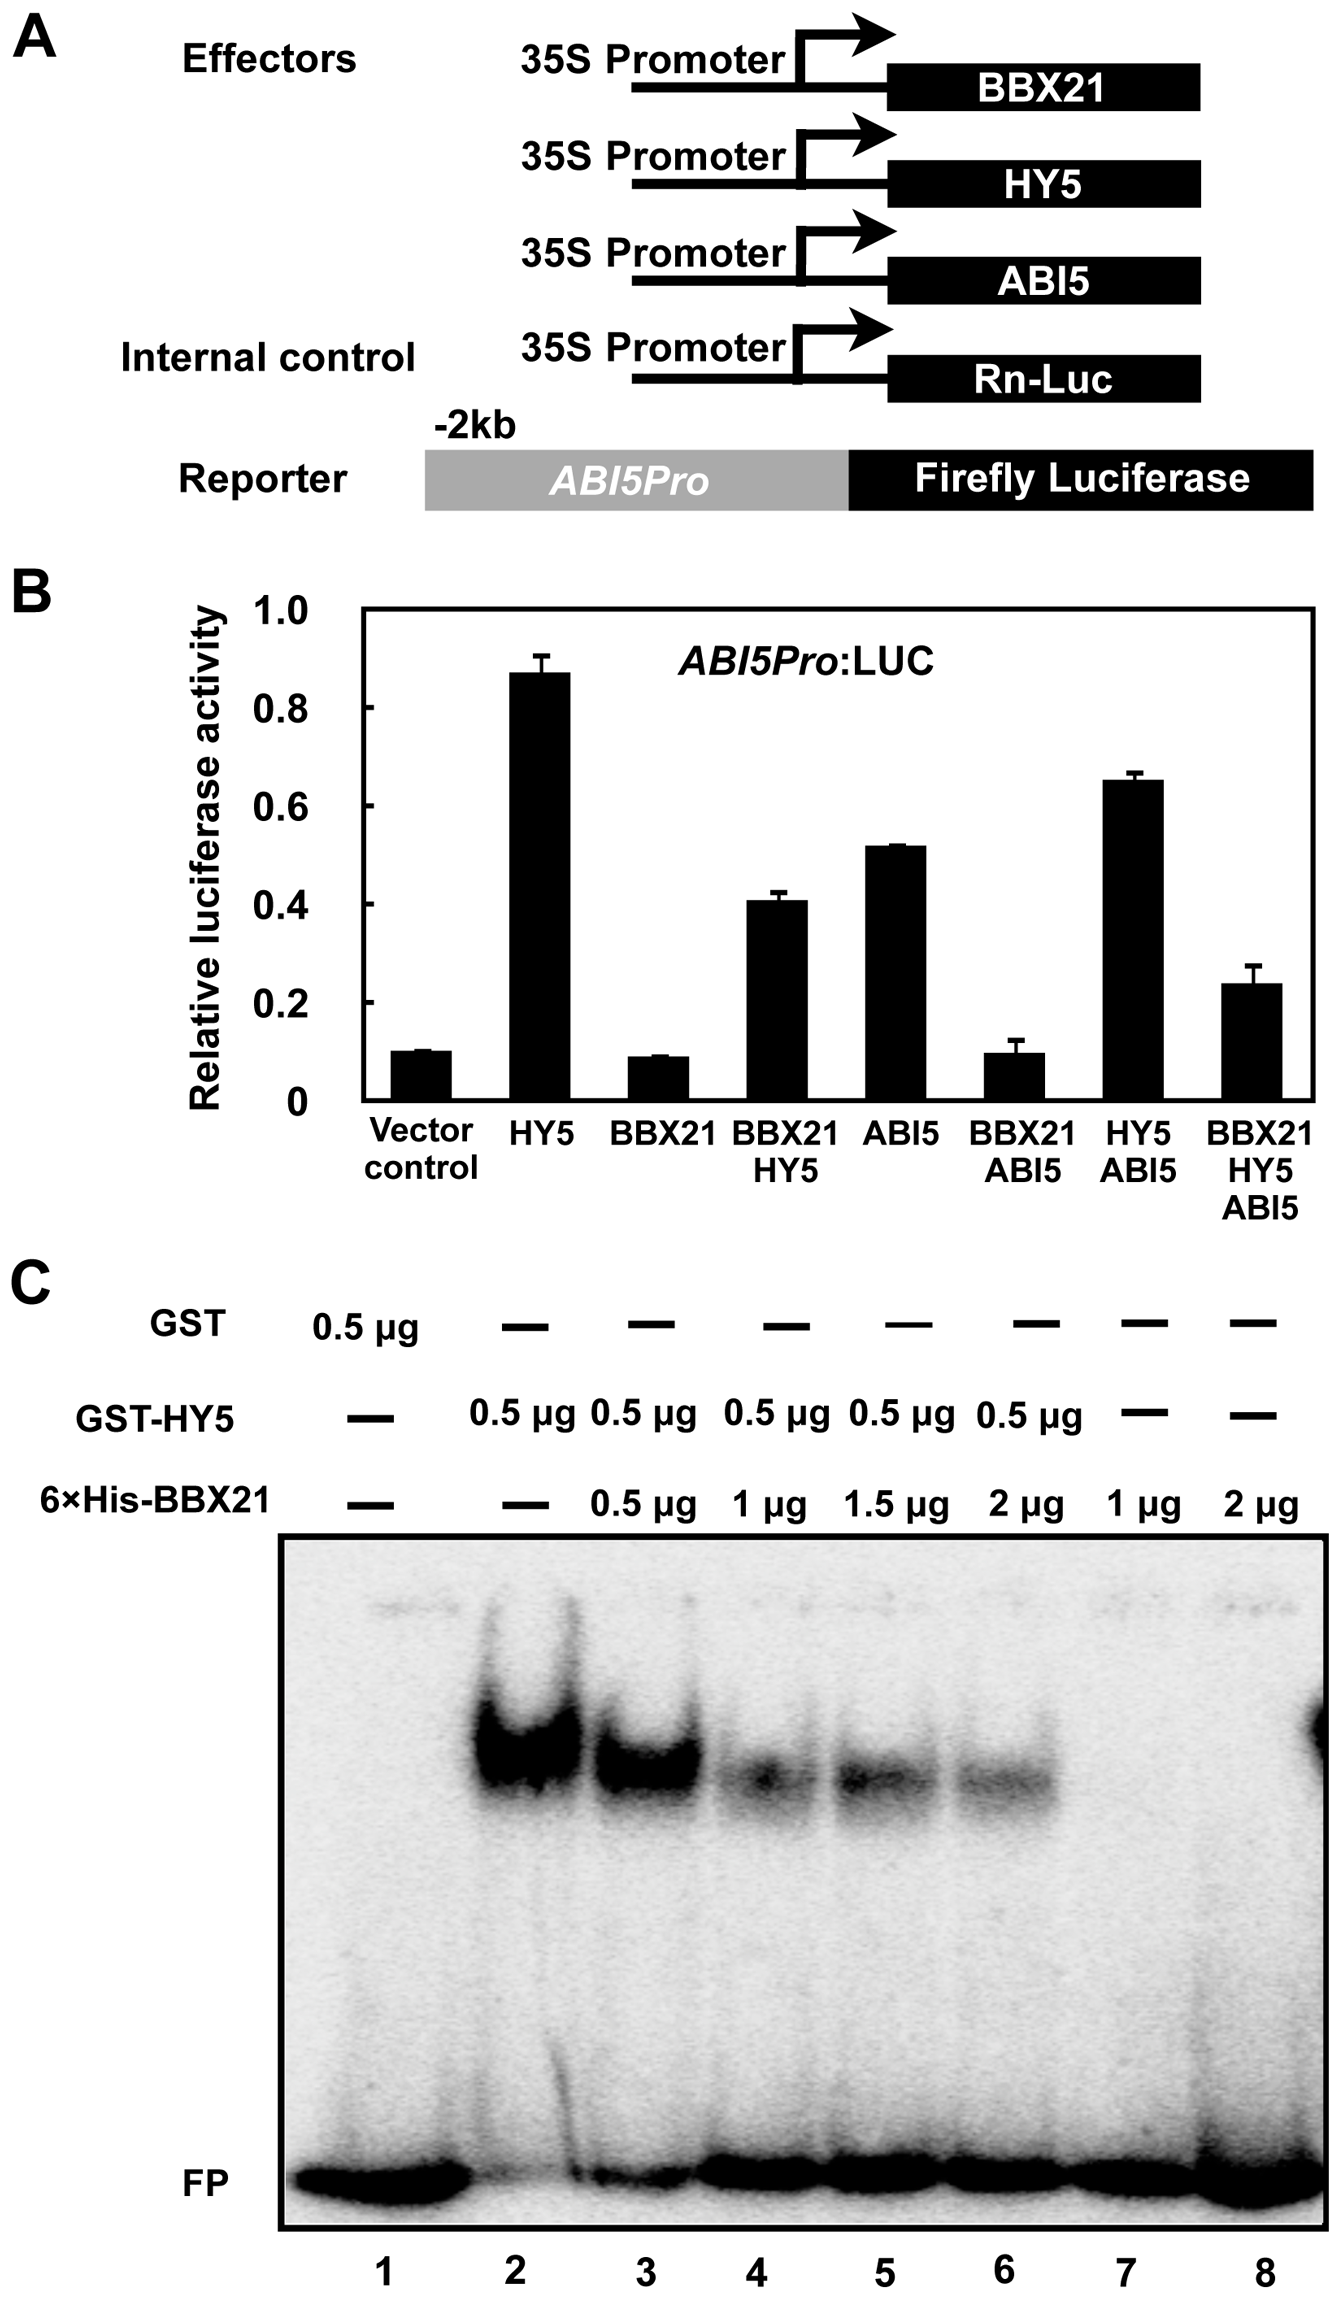 BBX21 negatively regulates <i>ABI5</i> expression by interfering with HY5 binding to the <i>ABI5</i> promoter.